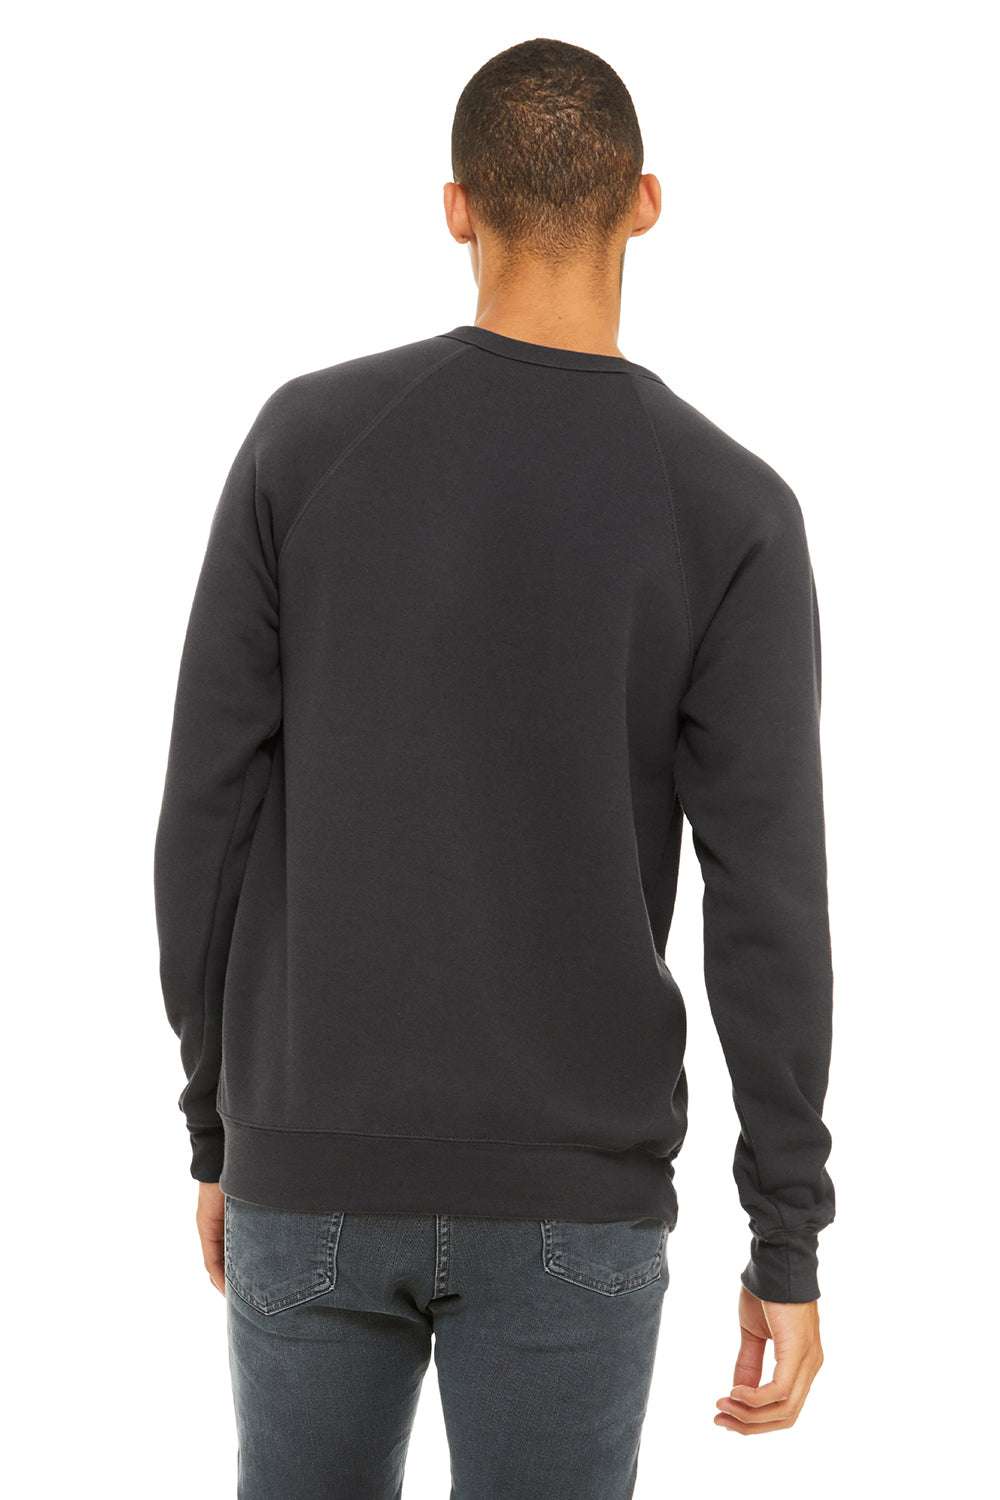 Bella + Canvas 3901 Mens Sponge Fleece Crewneck Sweatshirt Dark Grey Back